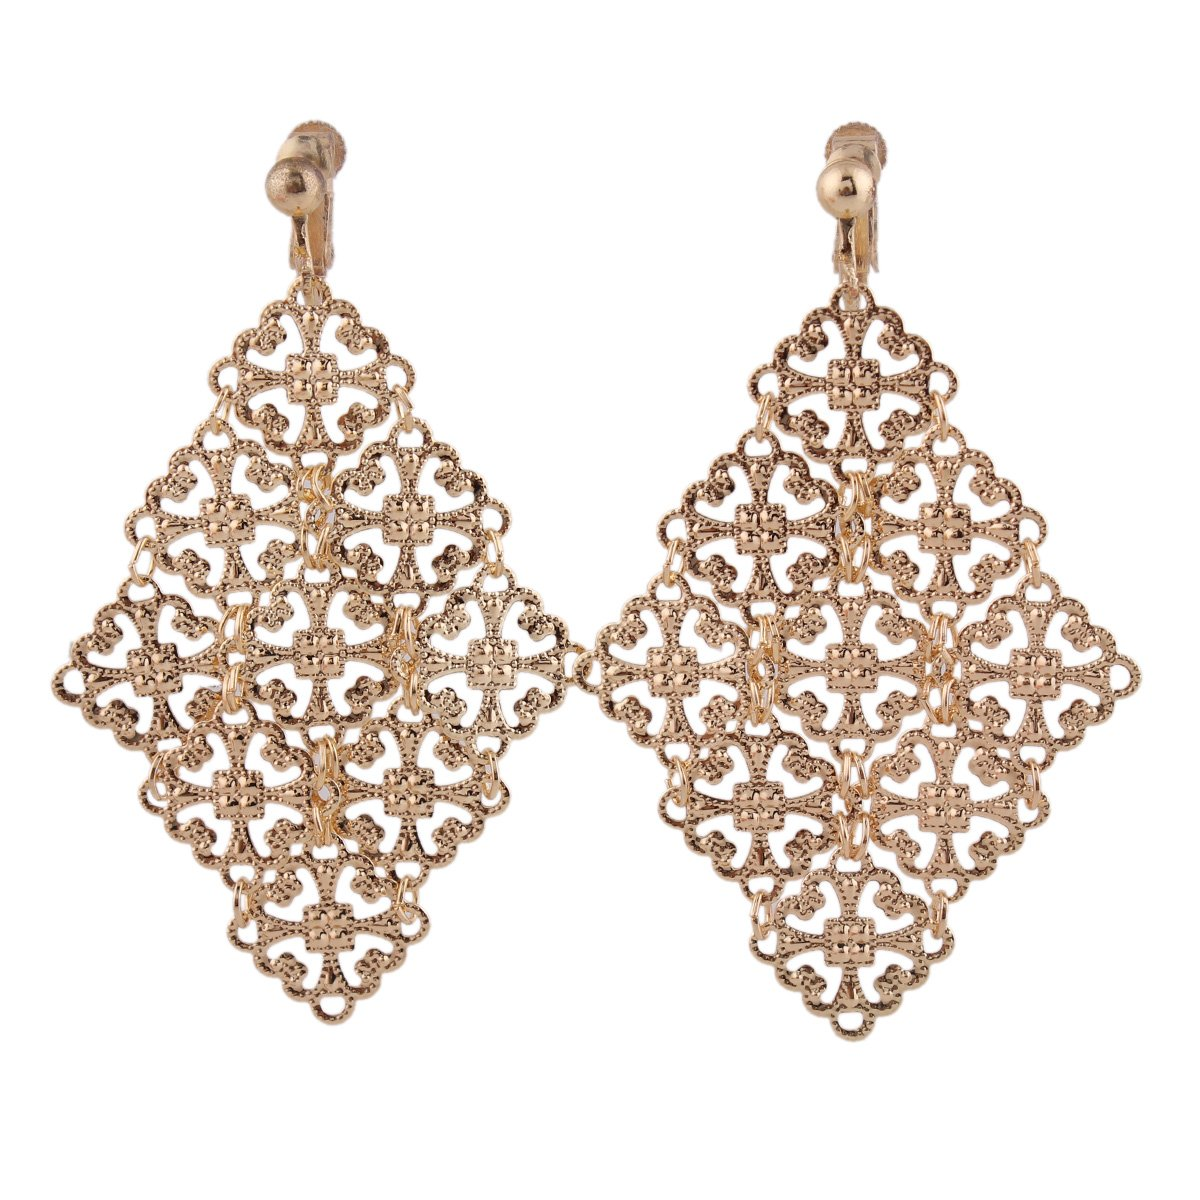 Handmade Gold Color Hollow-out Pattern Dangle Drop Earrings and Clip on Earrings No Pierced for Women (Clip-on)